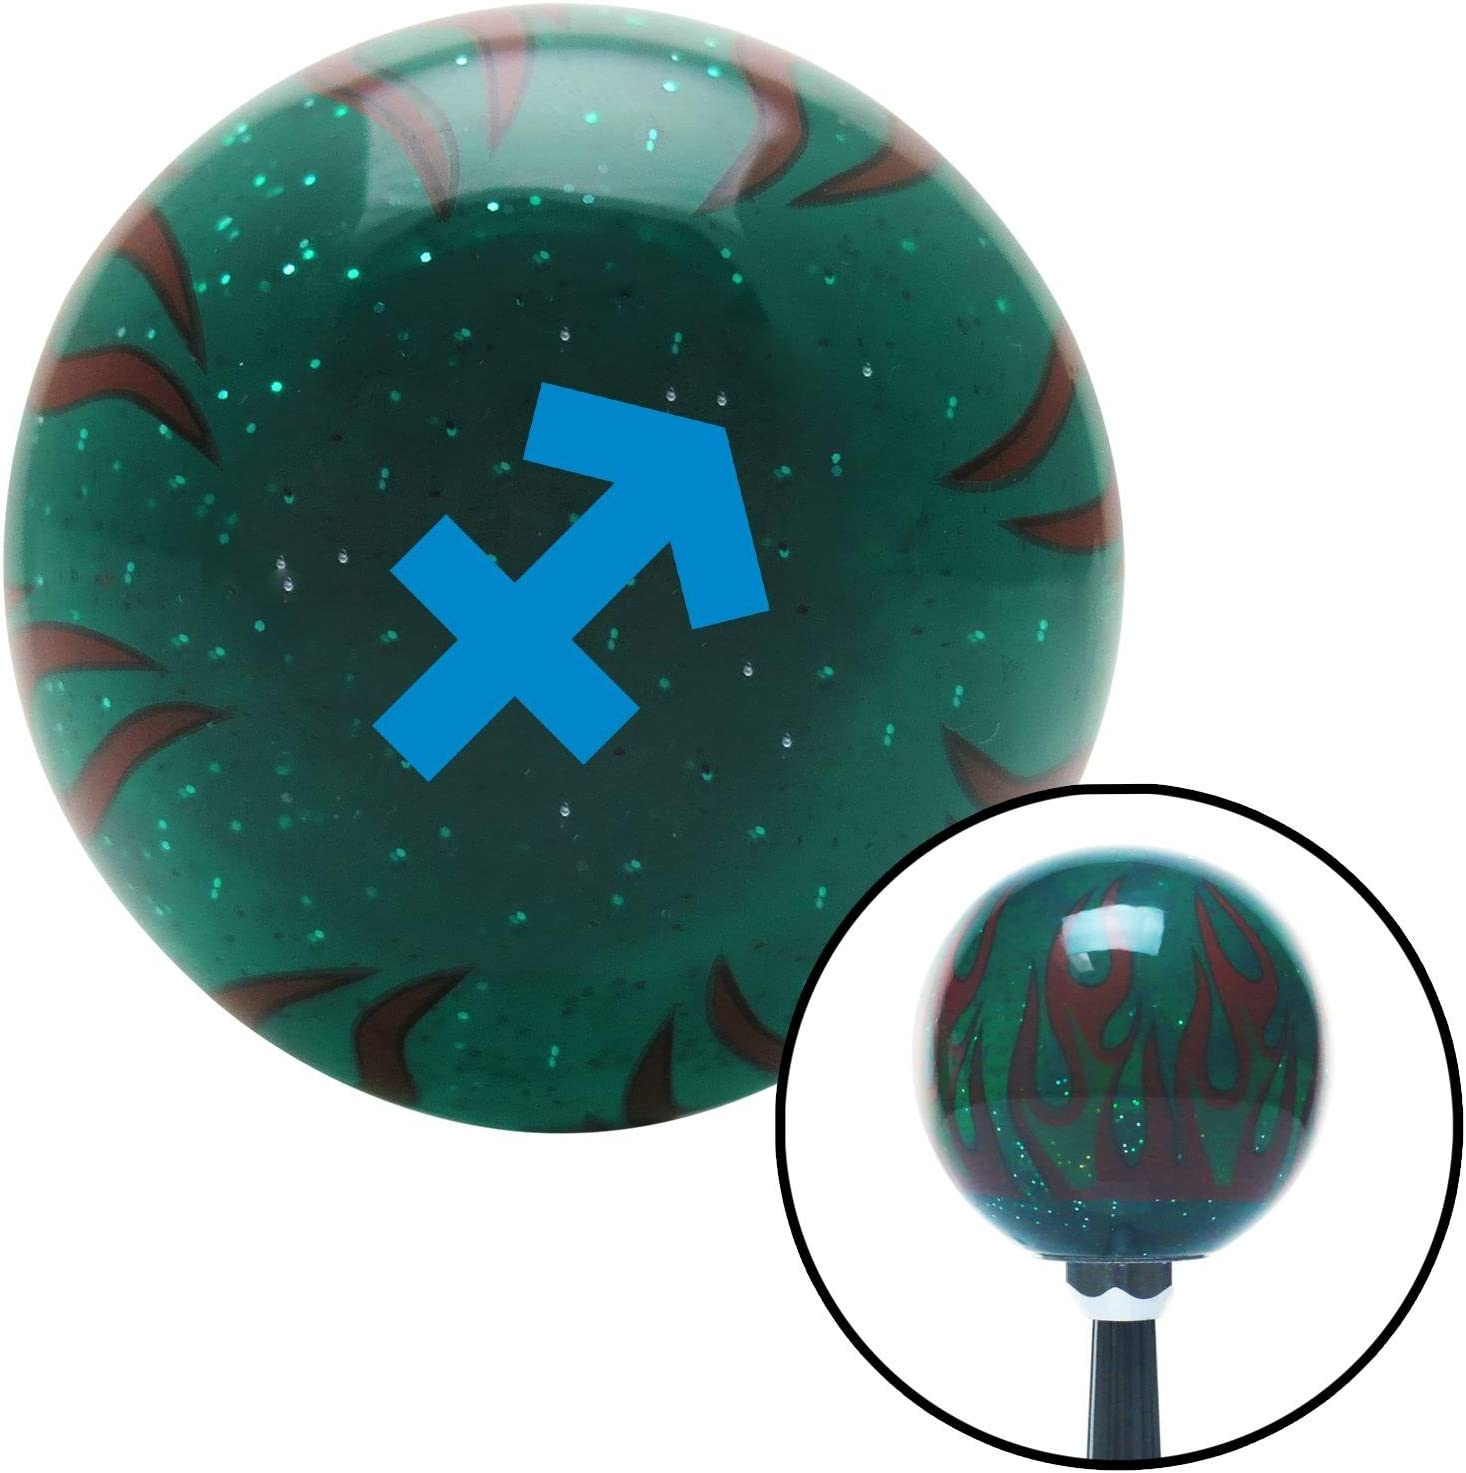 American Shifter 300359 Shift Knob Blue Sagitarius Green Flame Metal Flake with M16 x 1.5 Insert